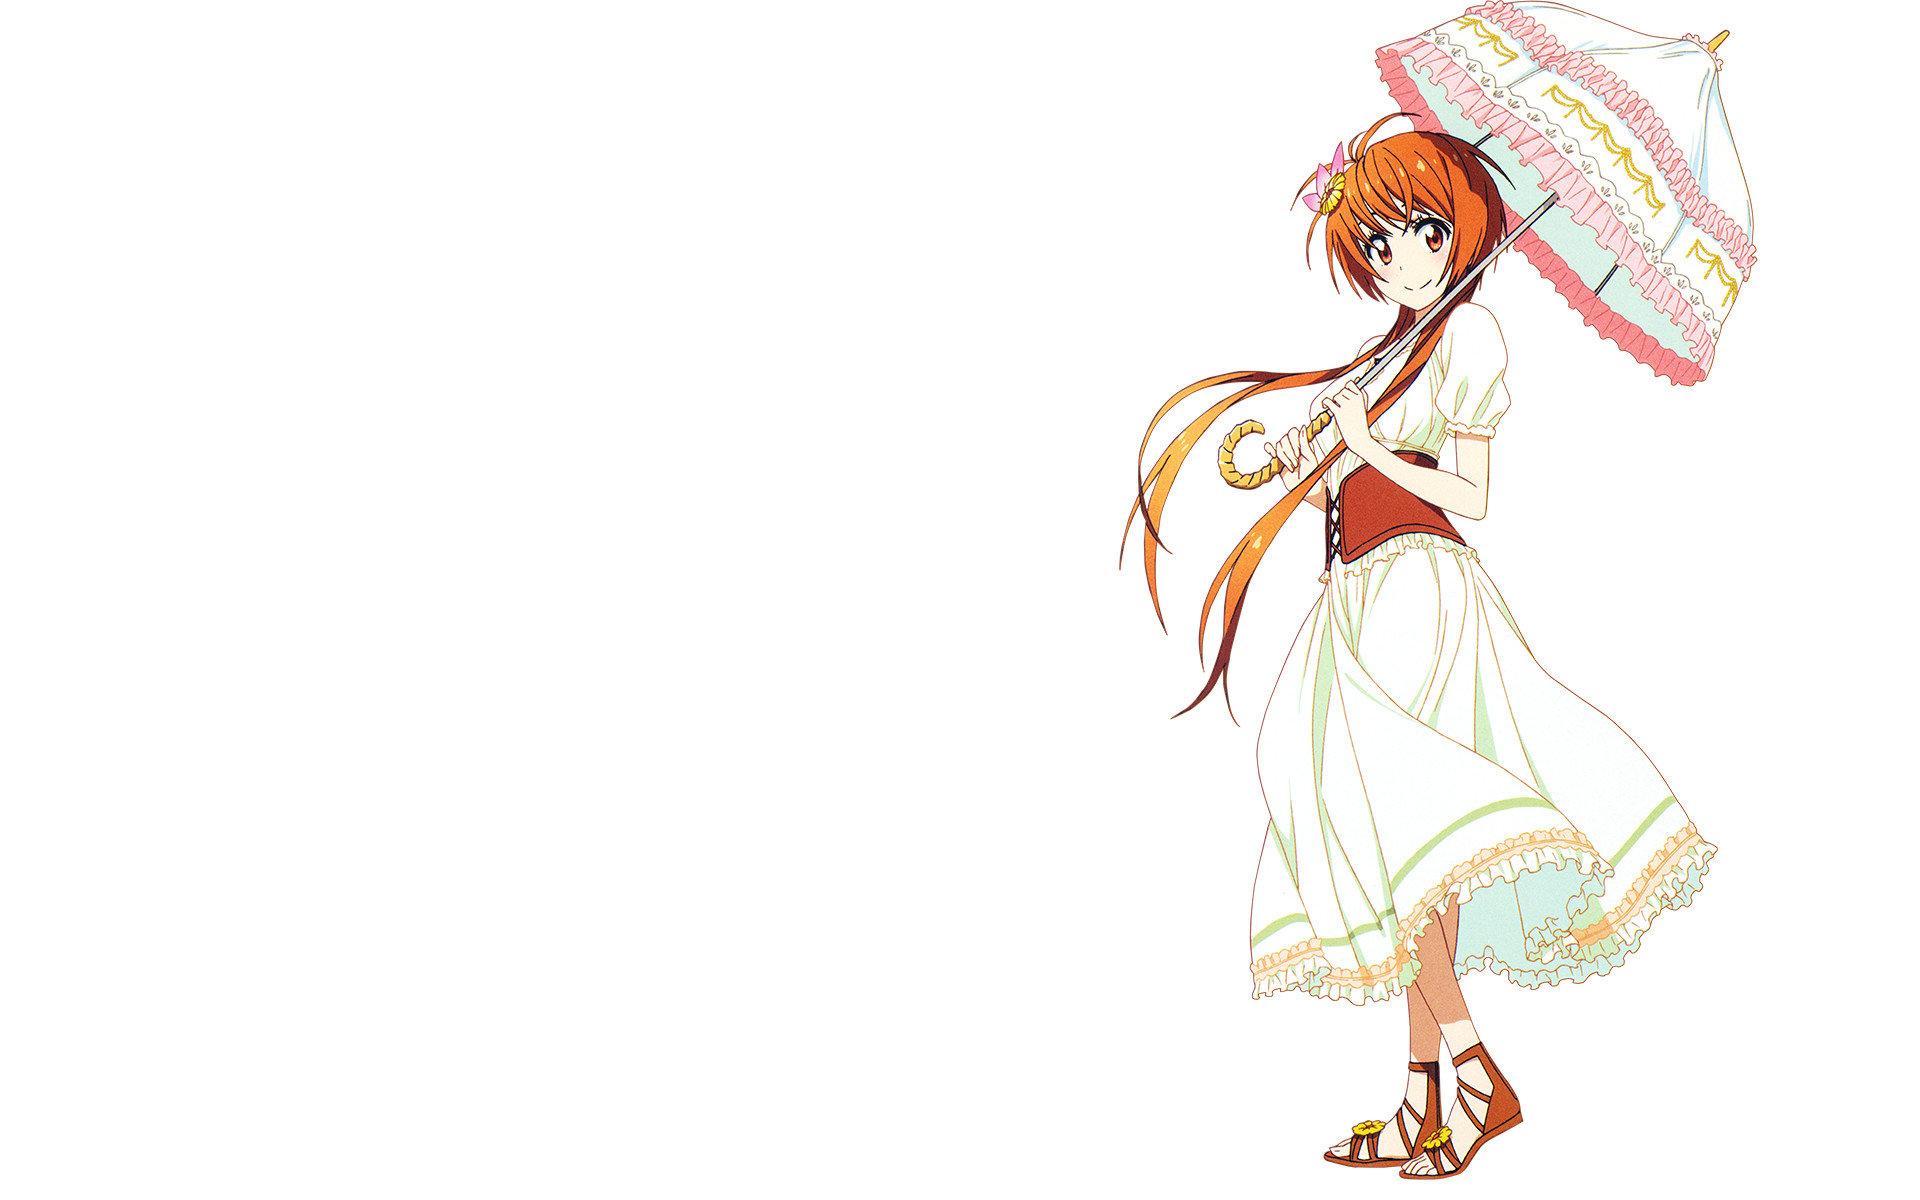 Free Marika Tachibana high quality wallpaper ID:323581 for hd 1920x1200 computer